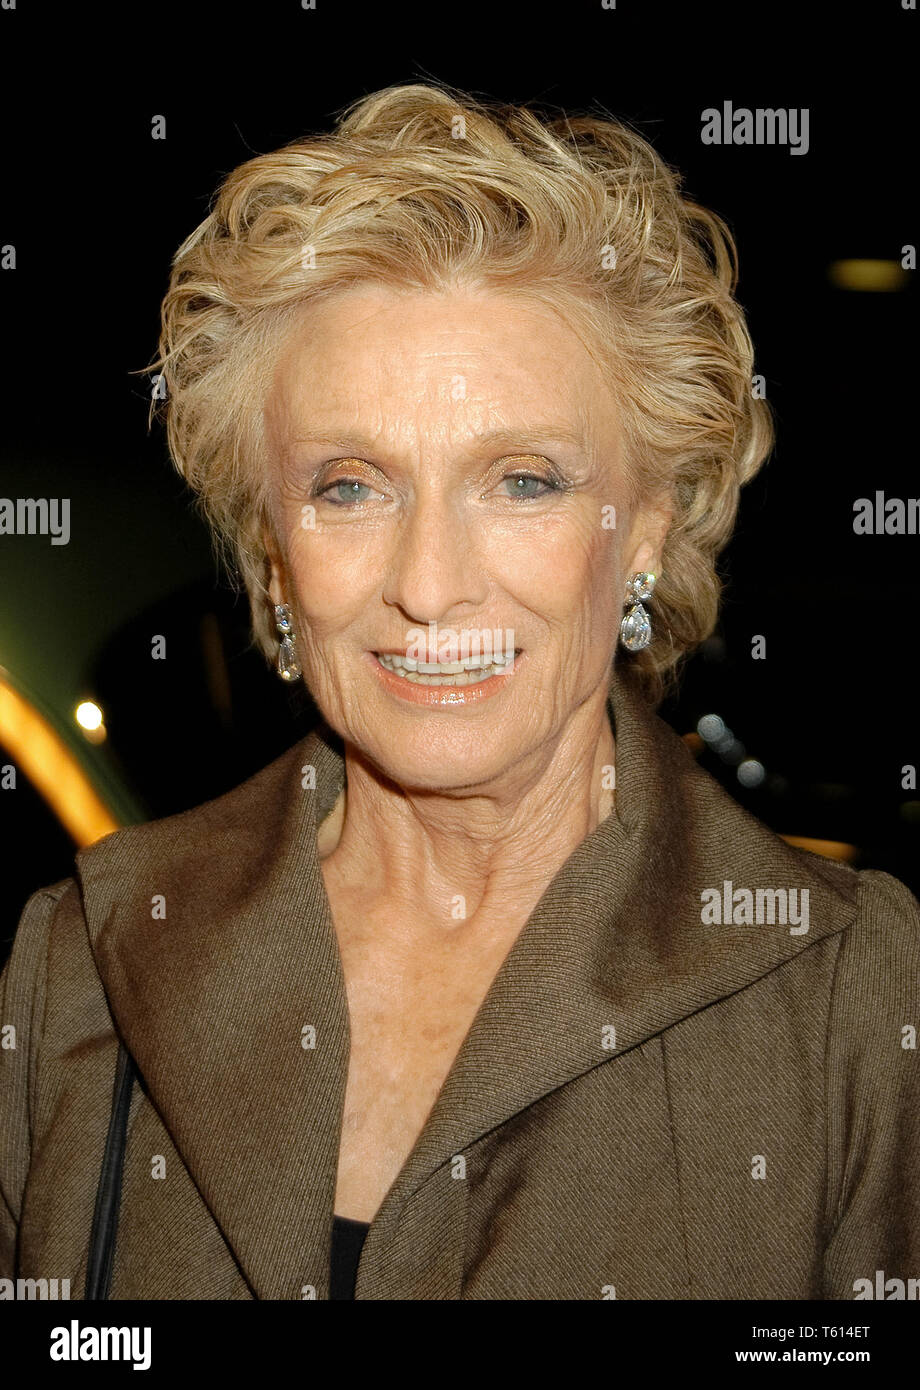 Cloris Leachman at the Academy of Television Arts & Sciences dinner honoring the 55th Annual Primetime Emmy Awards Nominees for Outstanding Performing Talent at Spagos in Beverly Hills, CA. The event took place on Thursday, September 18, 2003. Photo by: SBM / PictureLux  File Reference # 33790_1736SBMPLX - Stock Image